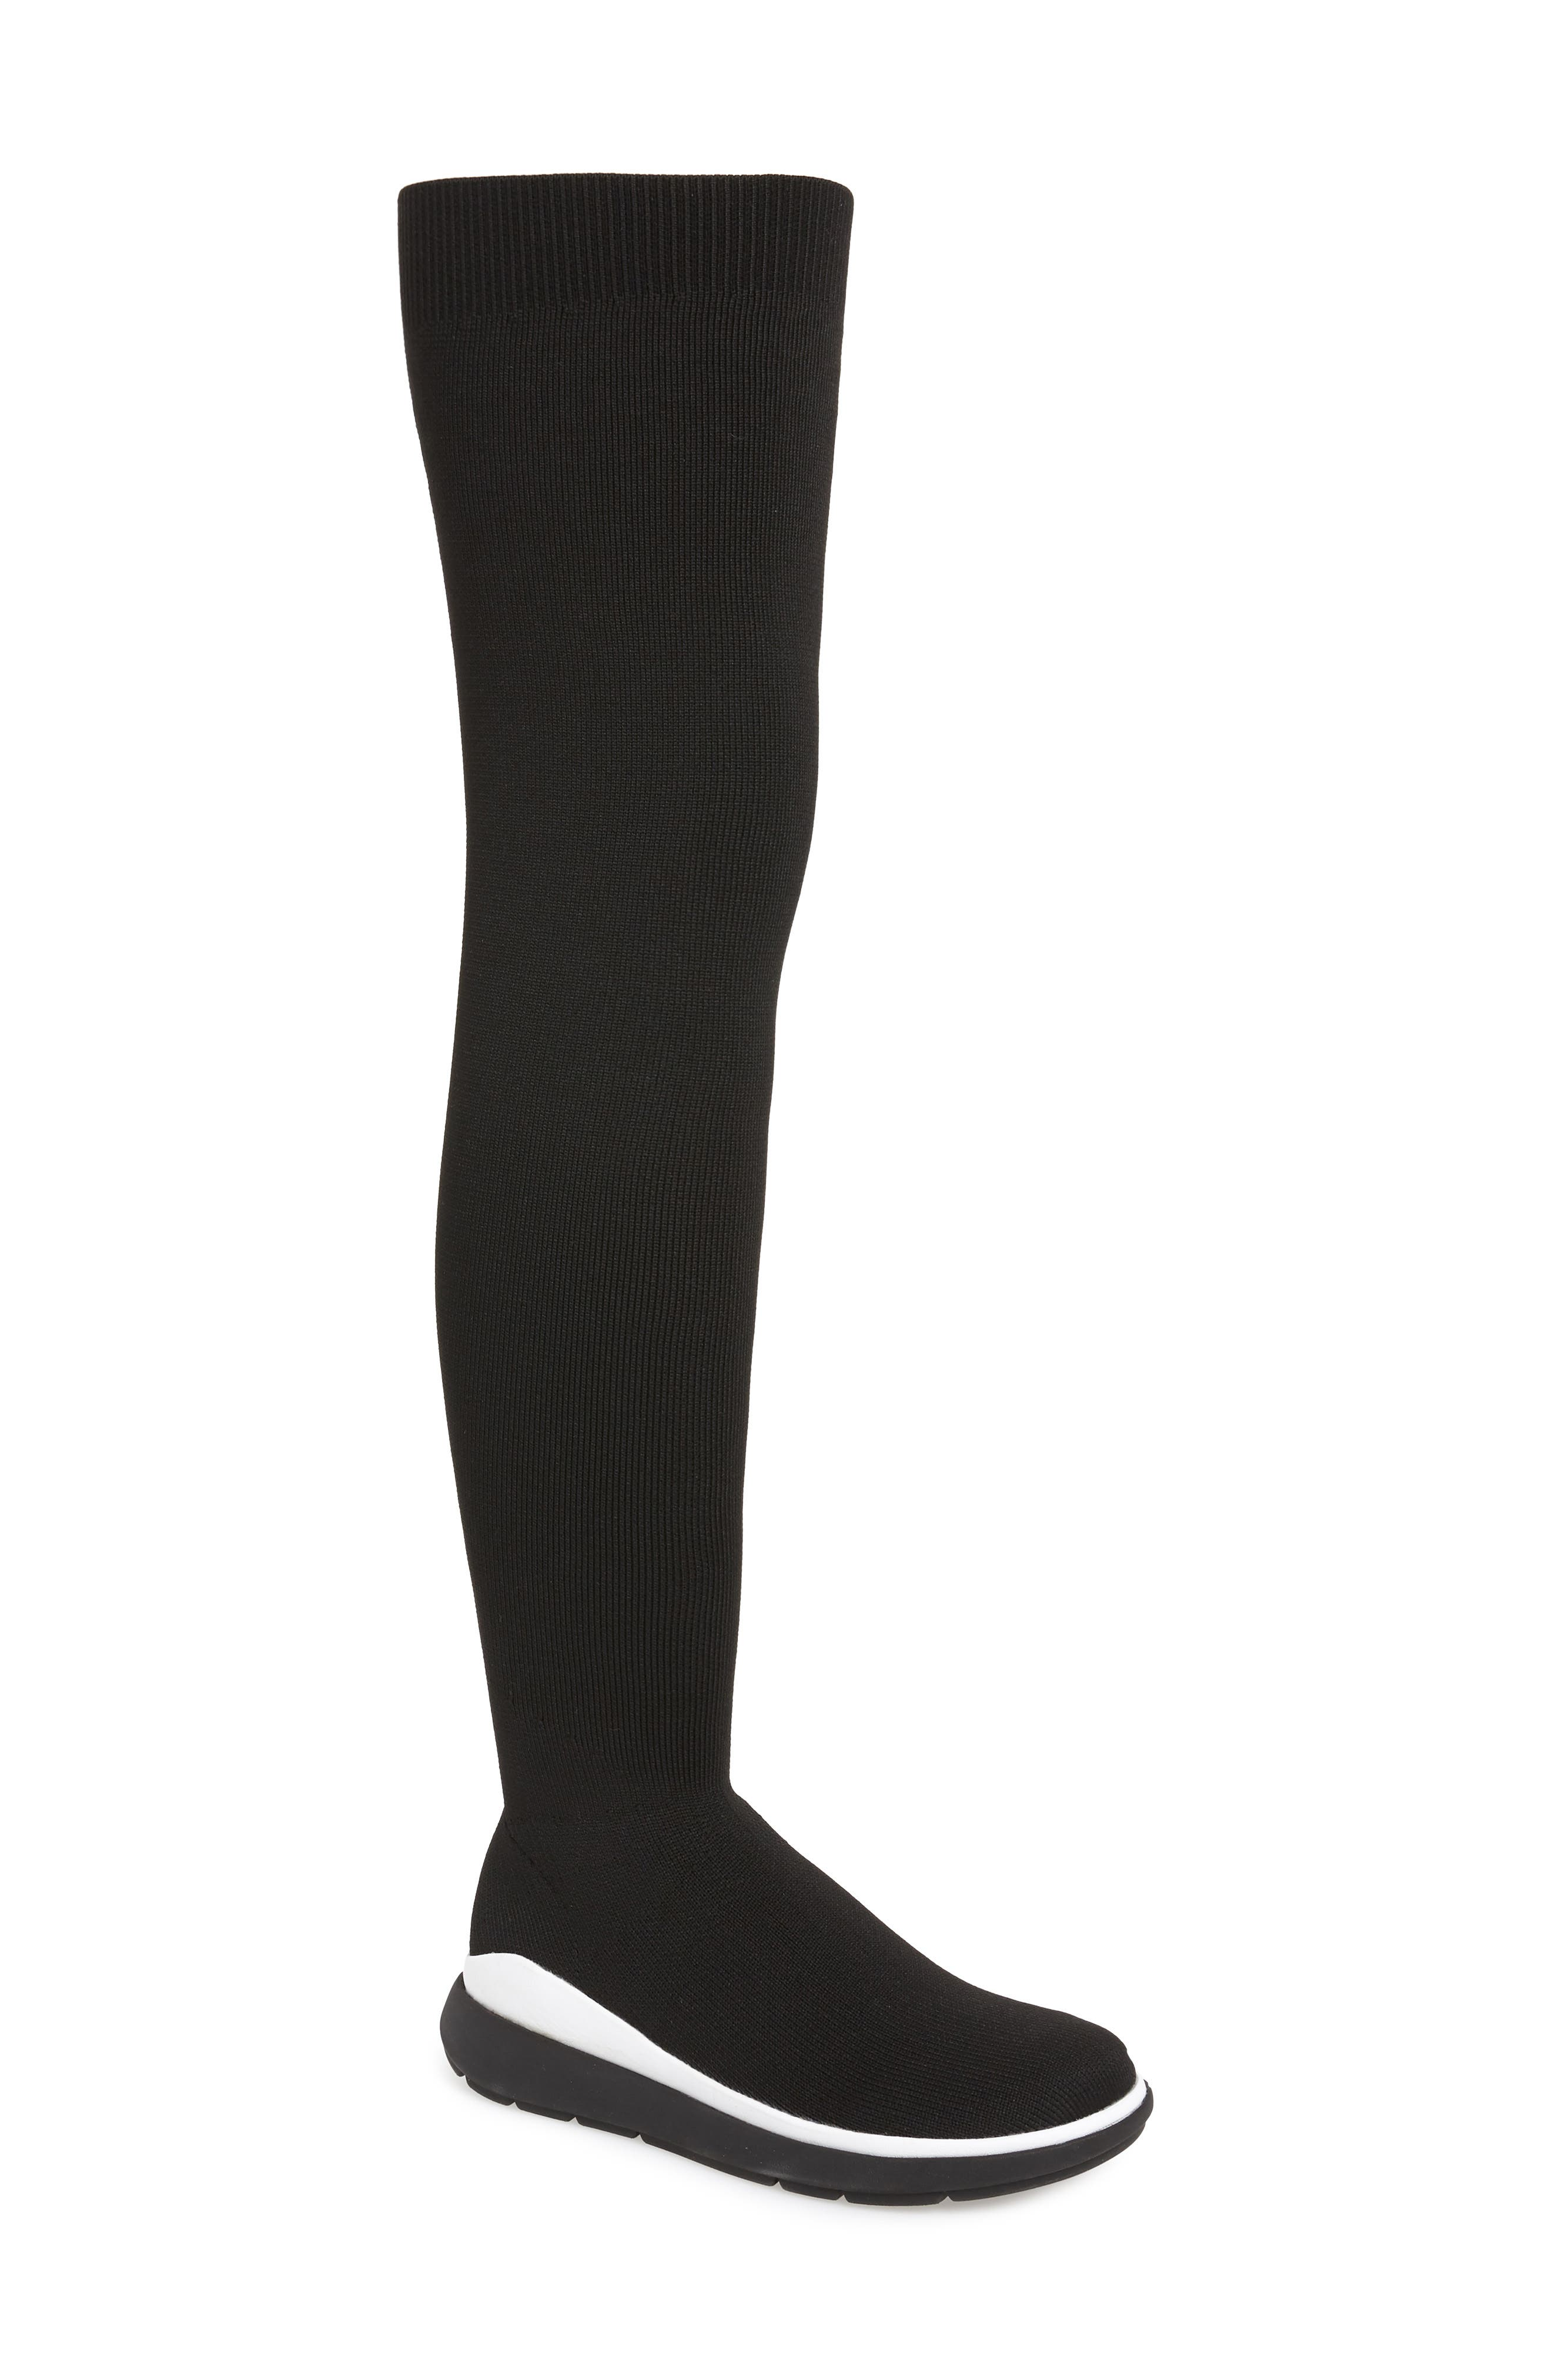 Fitflop Loosh Luxe Over The Knee Boot, Black